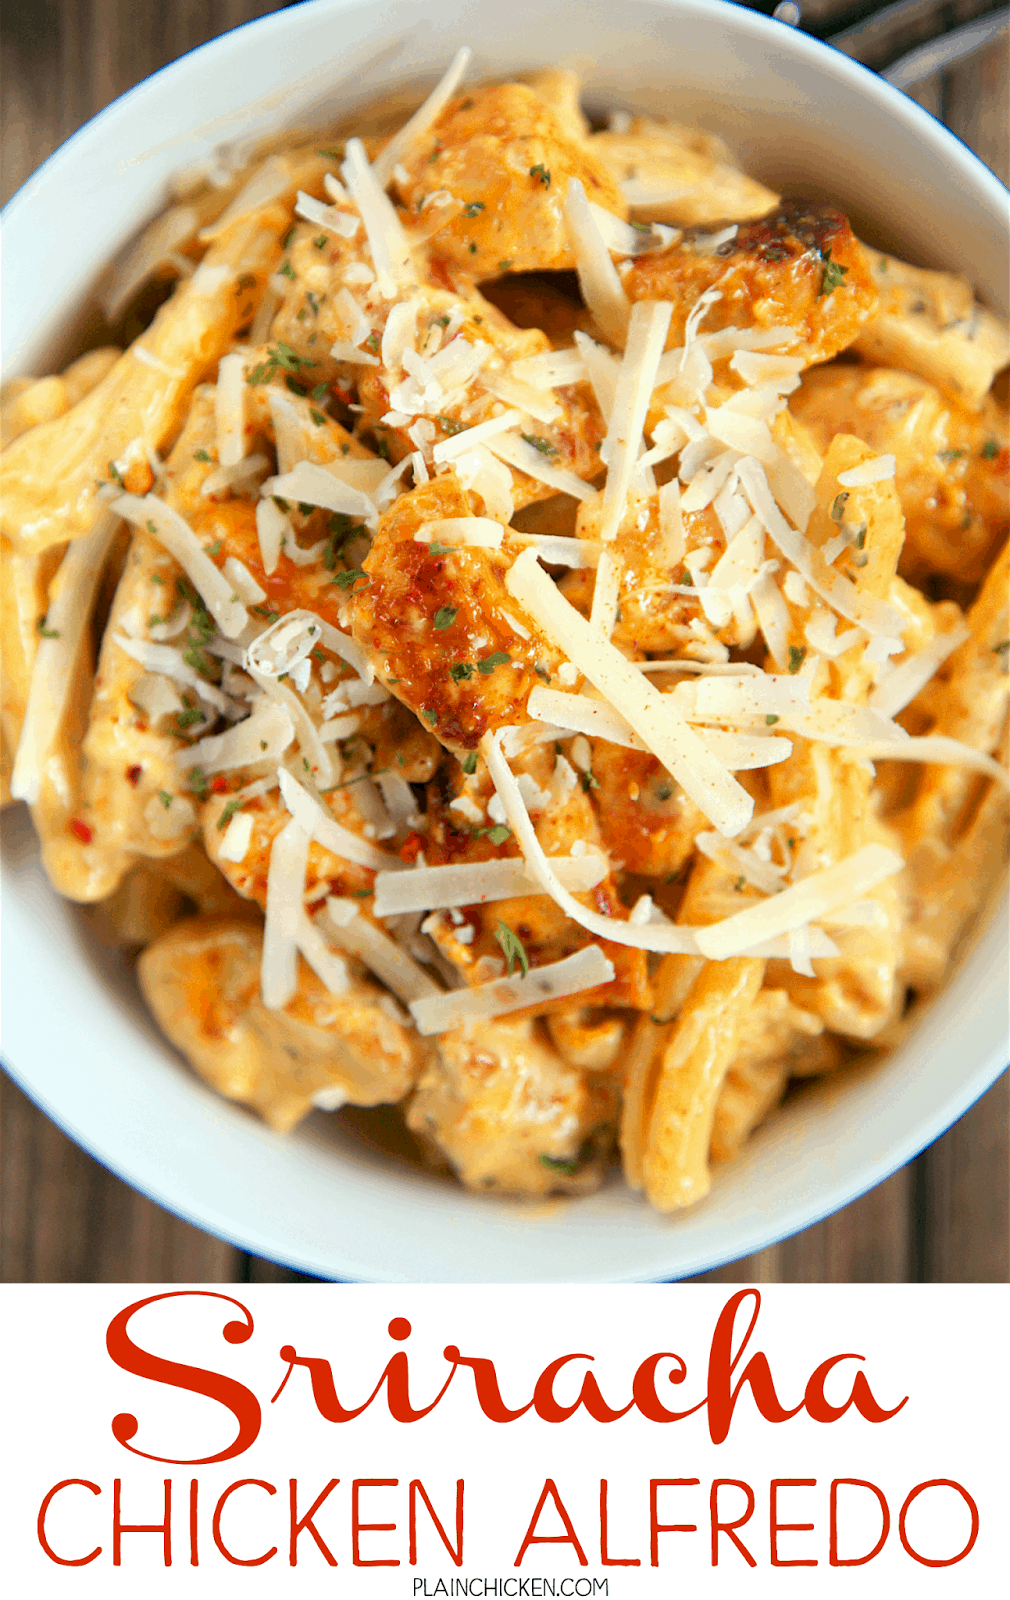 Sriracha Chicken Alfredo - super quick pasta dish that is ready in 15 minutes and requires no prep work! Chicken, sriracha seasoning, garlic and onion powder, heavy cream, parmesan cheese and pasta. We can not get enough of this simple dish!! It is SOO good!! I wanted to lick my plate! Serve with a salad and some crusty bread for a quick and easy weeknight meal!